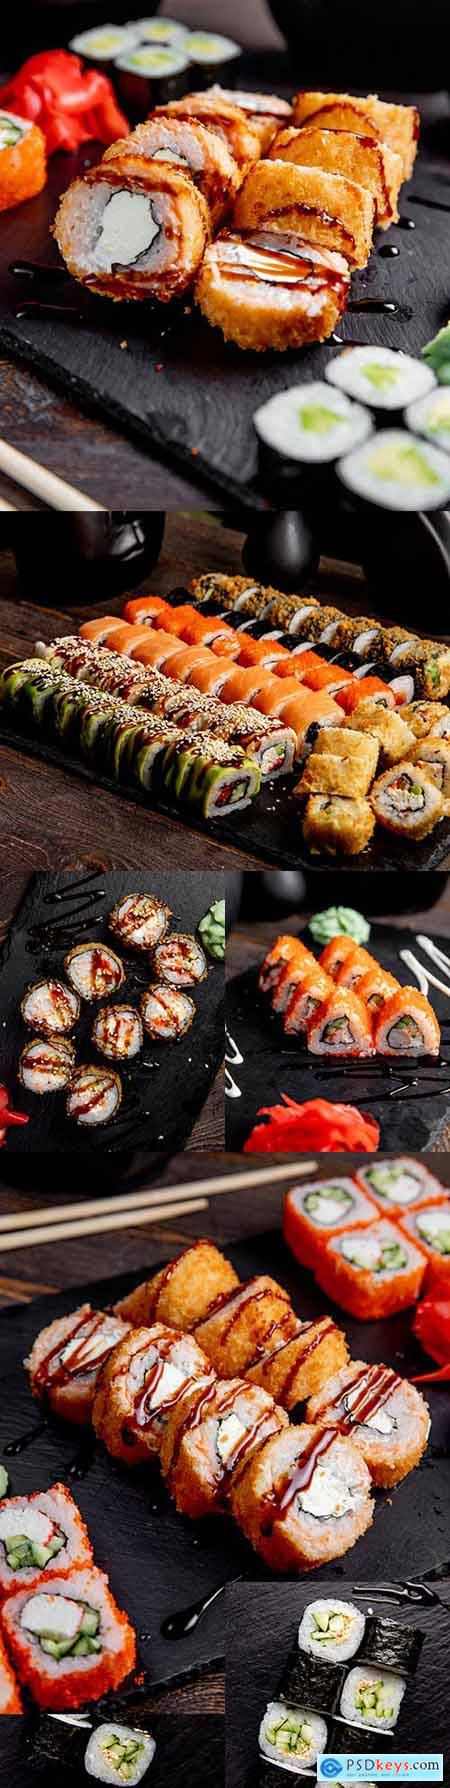 Sushi and rolls with sauce on the table Japanese cuisine